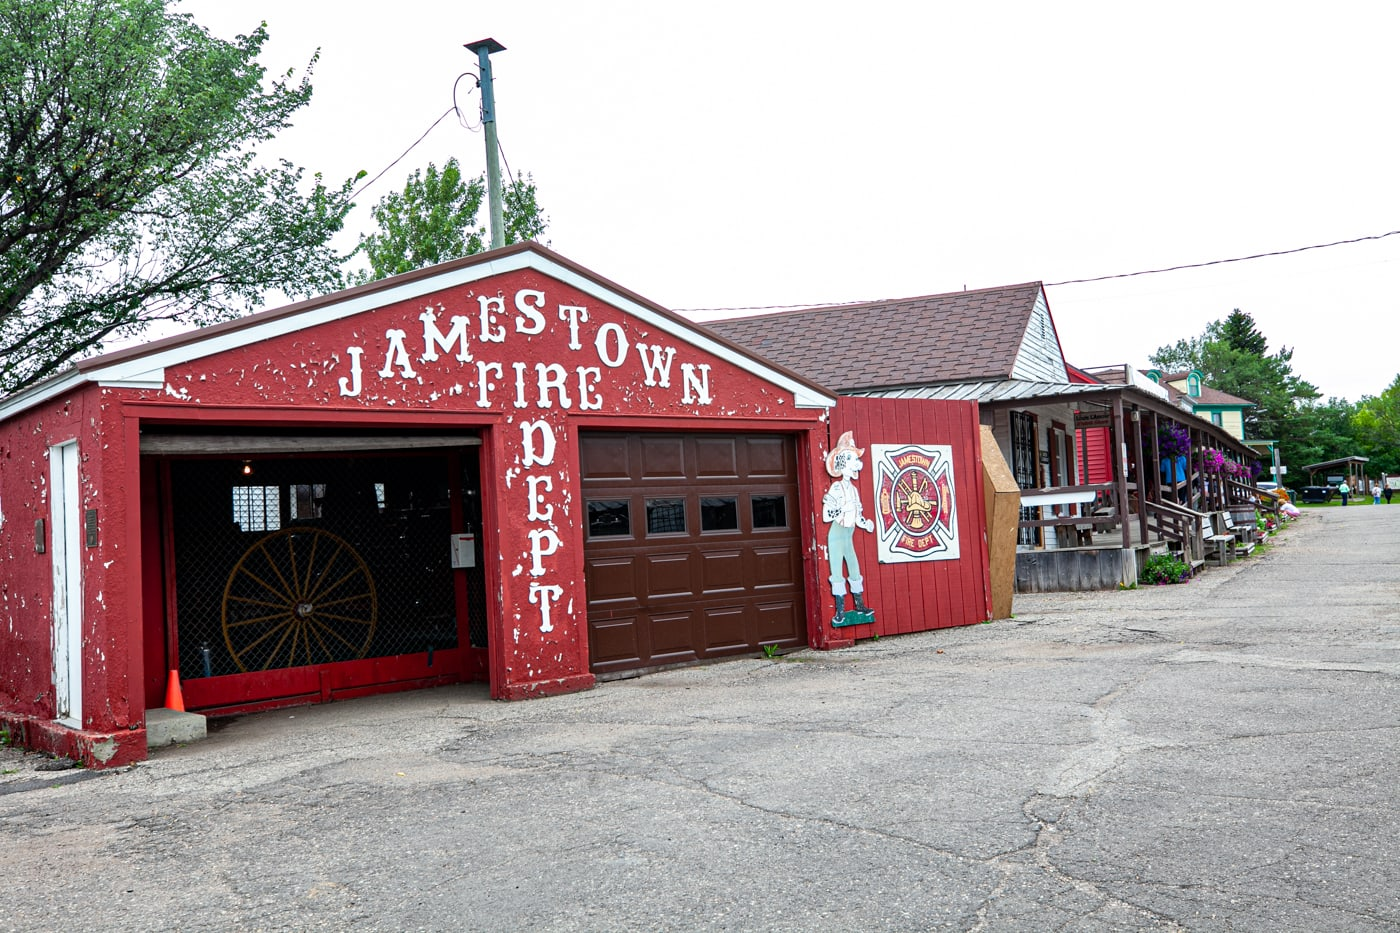 Jamestown Fire Dept at Frontier Village in Jamestown, North Dakota | Roadside Attractions in North Dakota